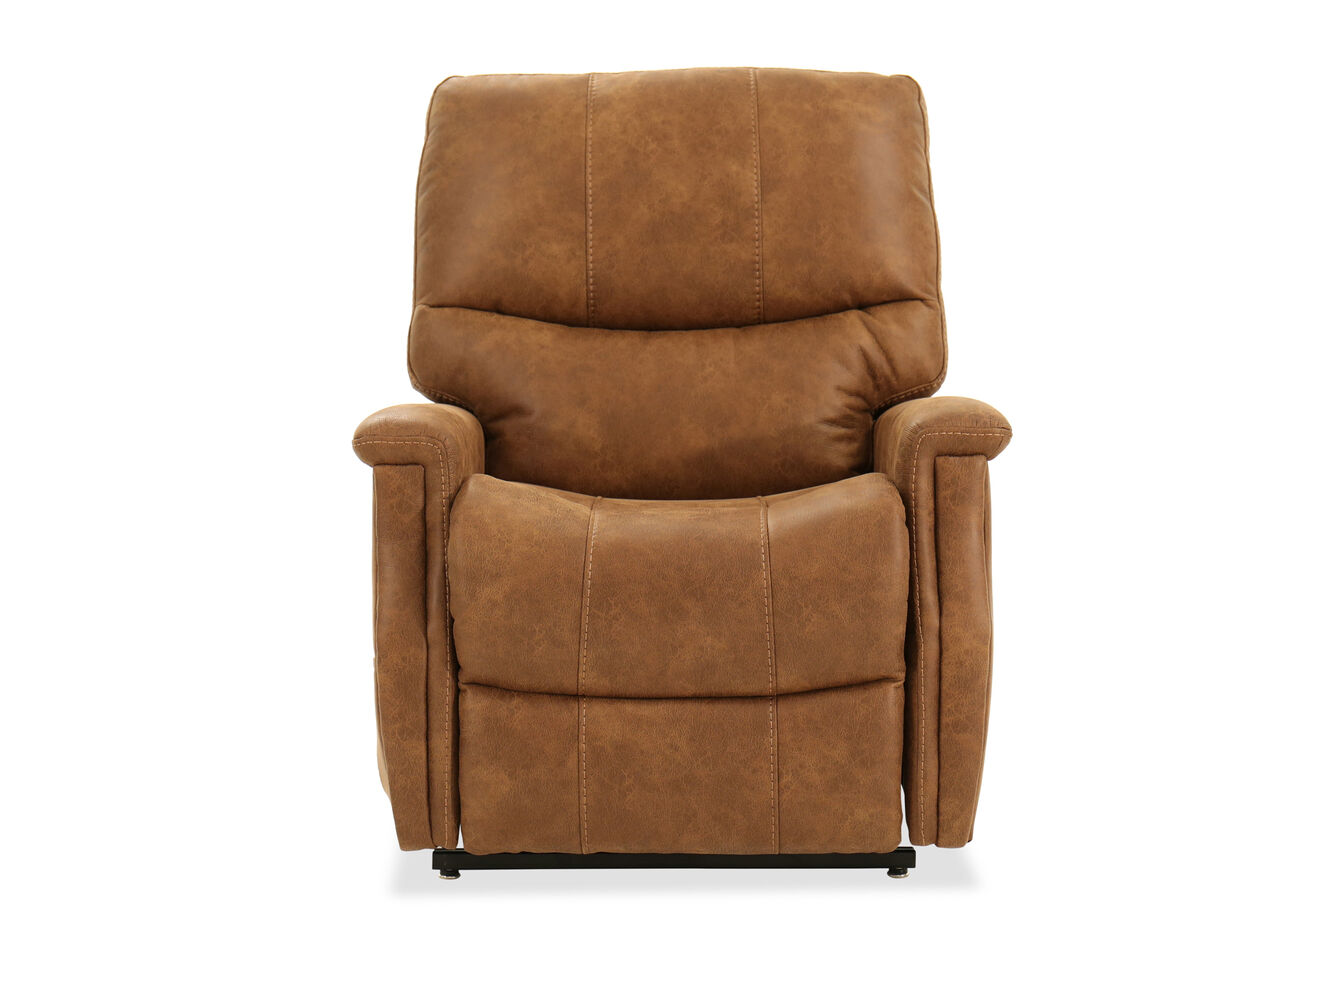 s safety a swivel rent of chairs medicare does large for lift cover awesome baby insurance wing shower chair size slipcover or full bath covers slipcovers gray coverage bridal pay